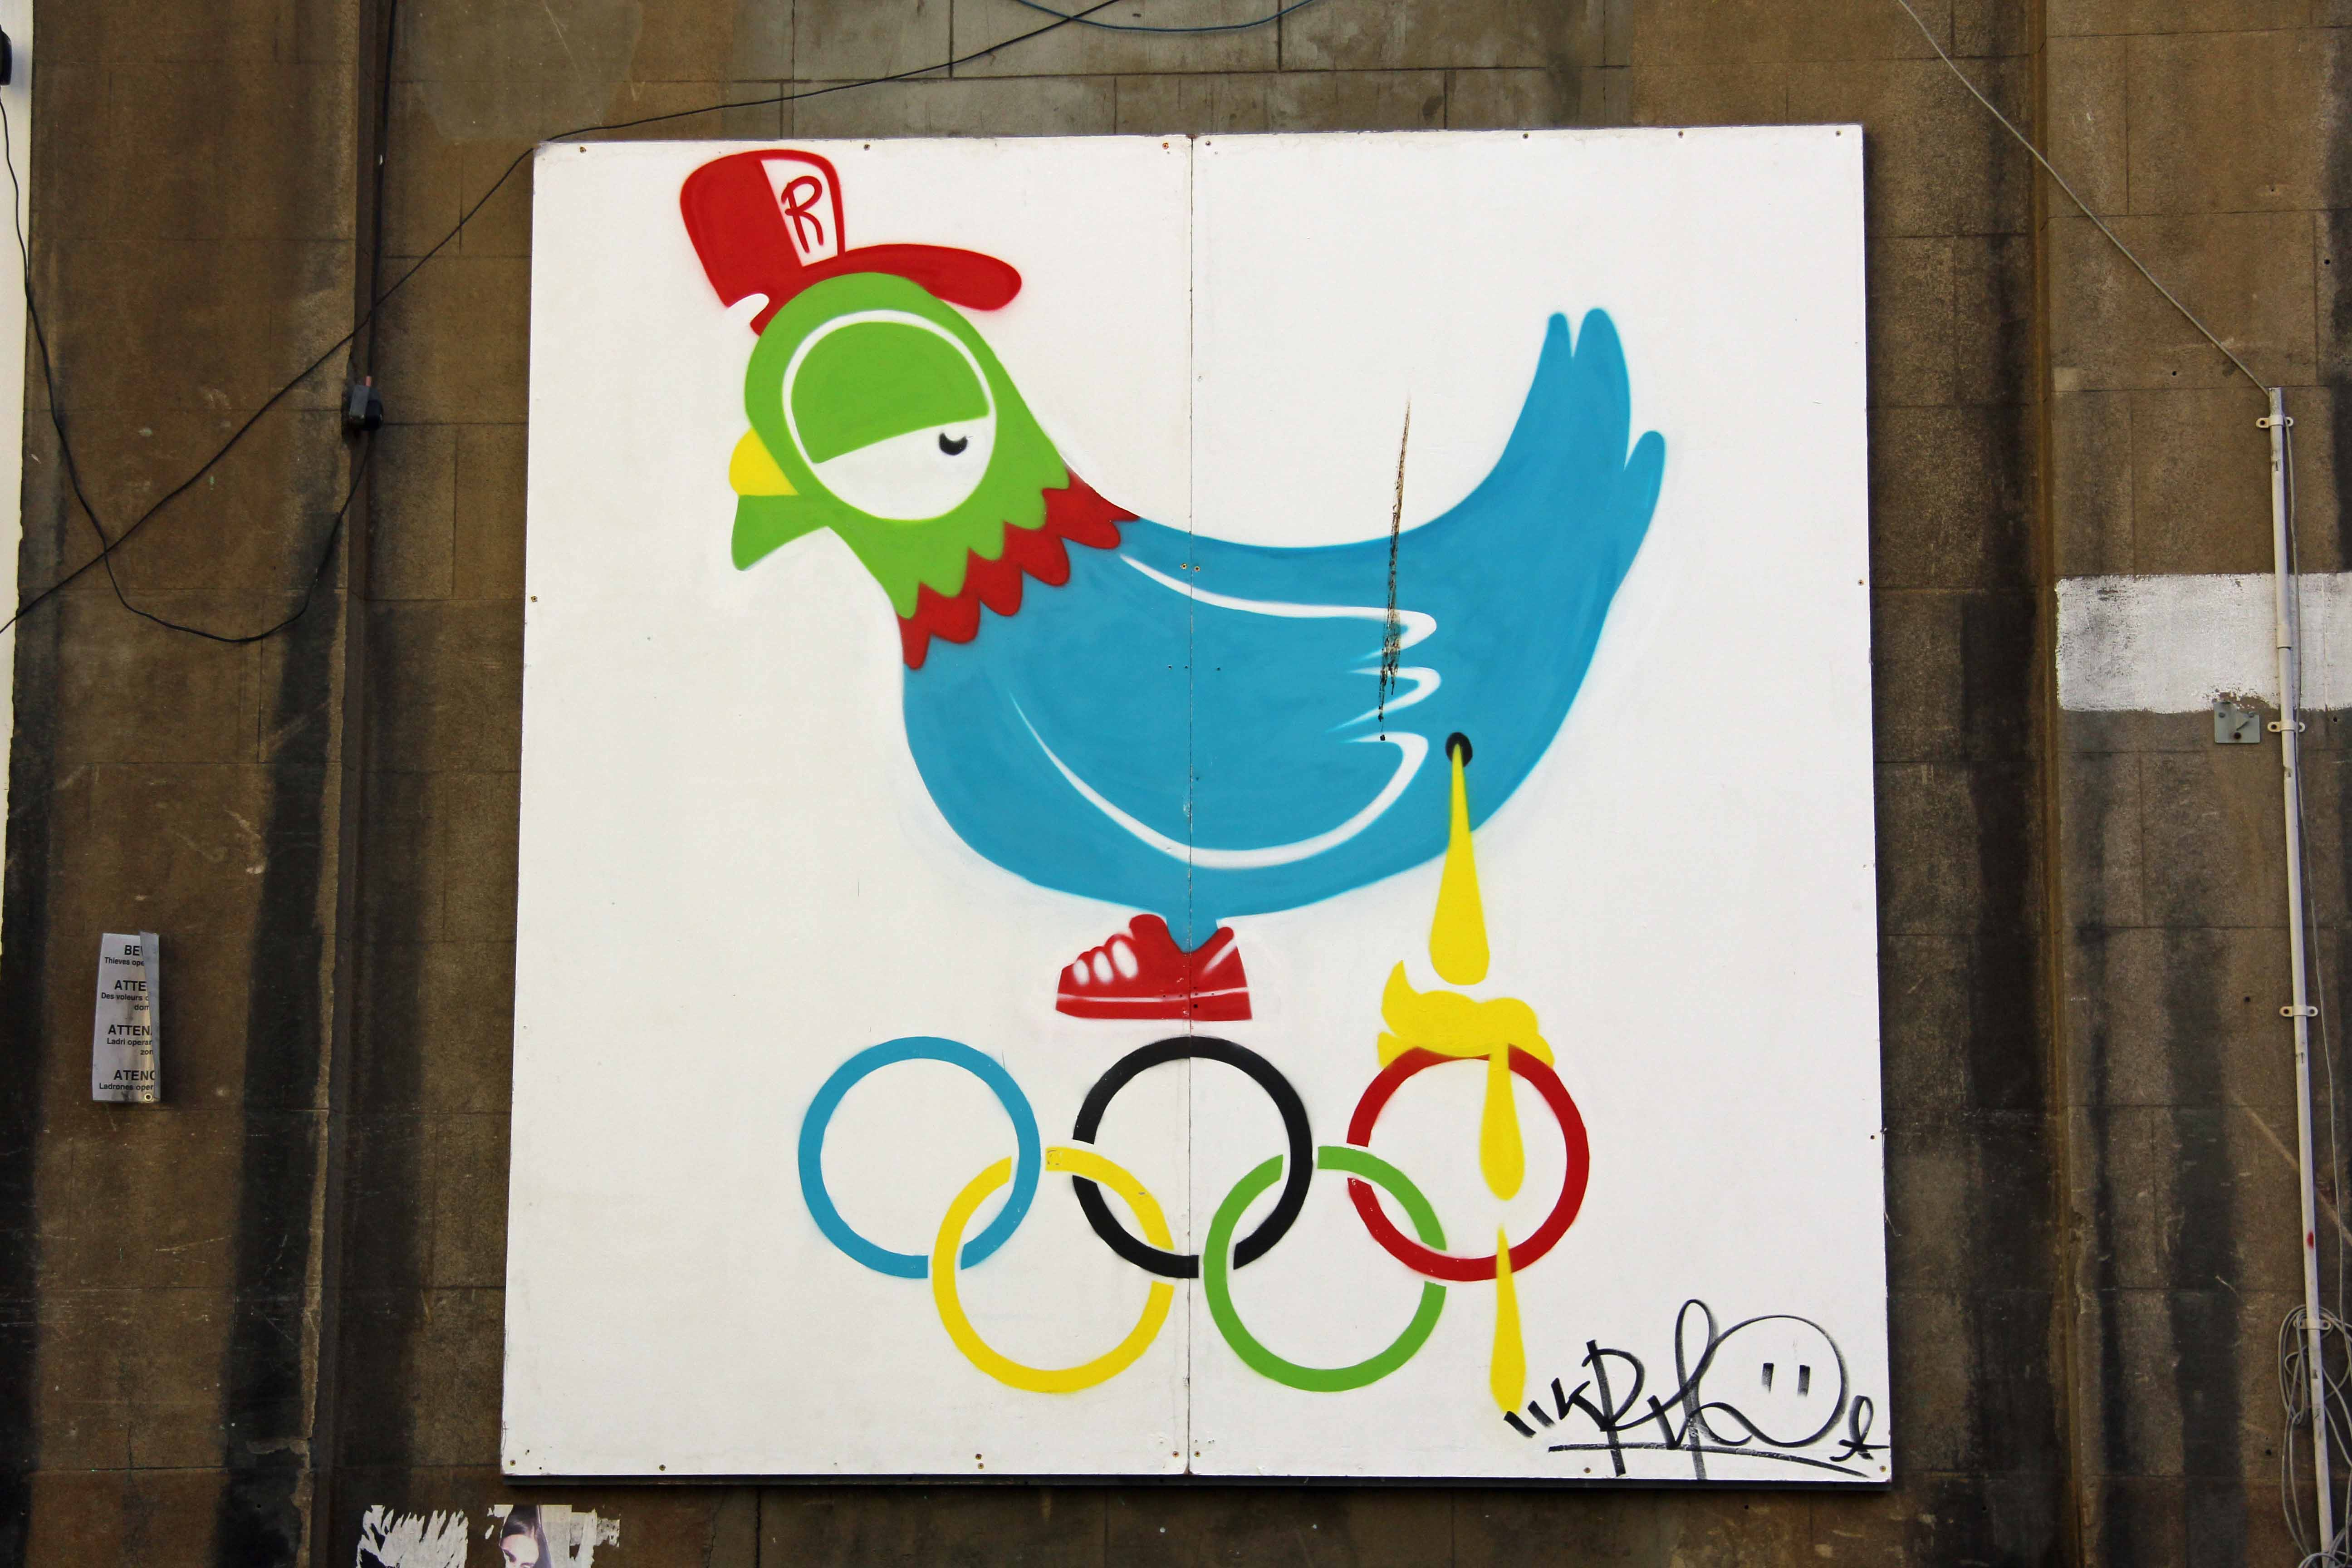 Dirty Bird: Olympic inspired Street Art by Ronzo in London